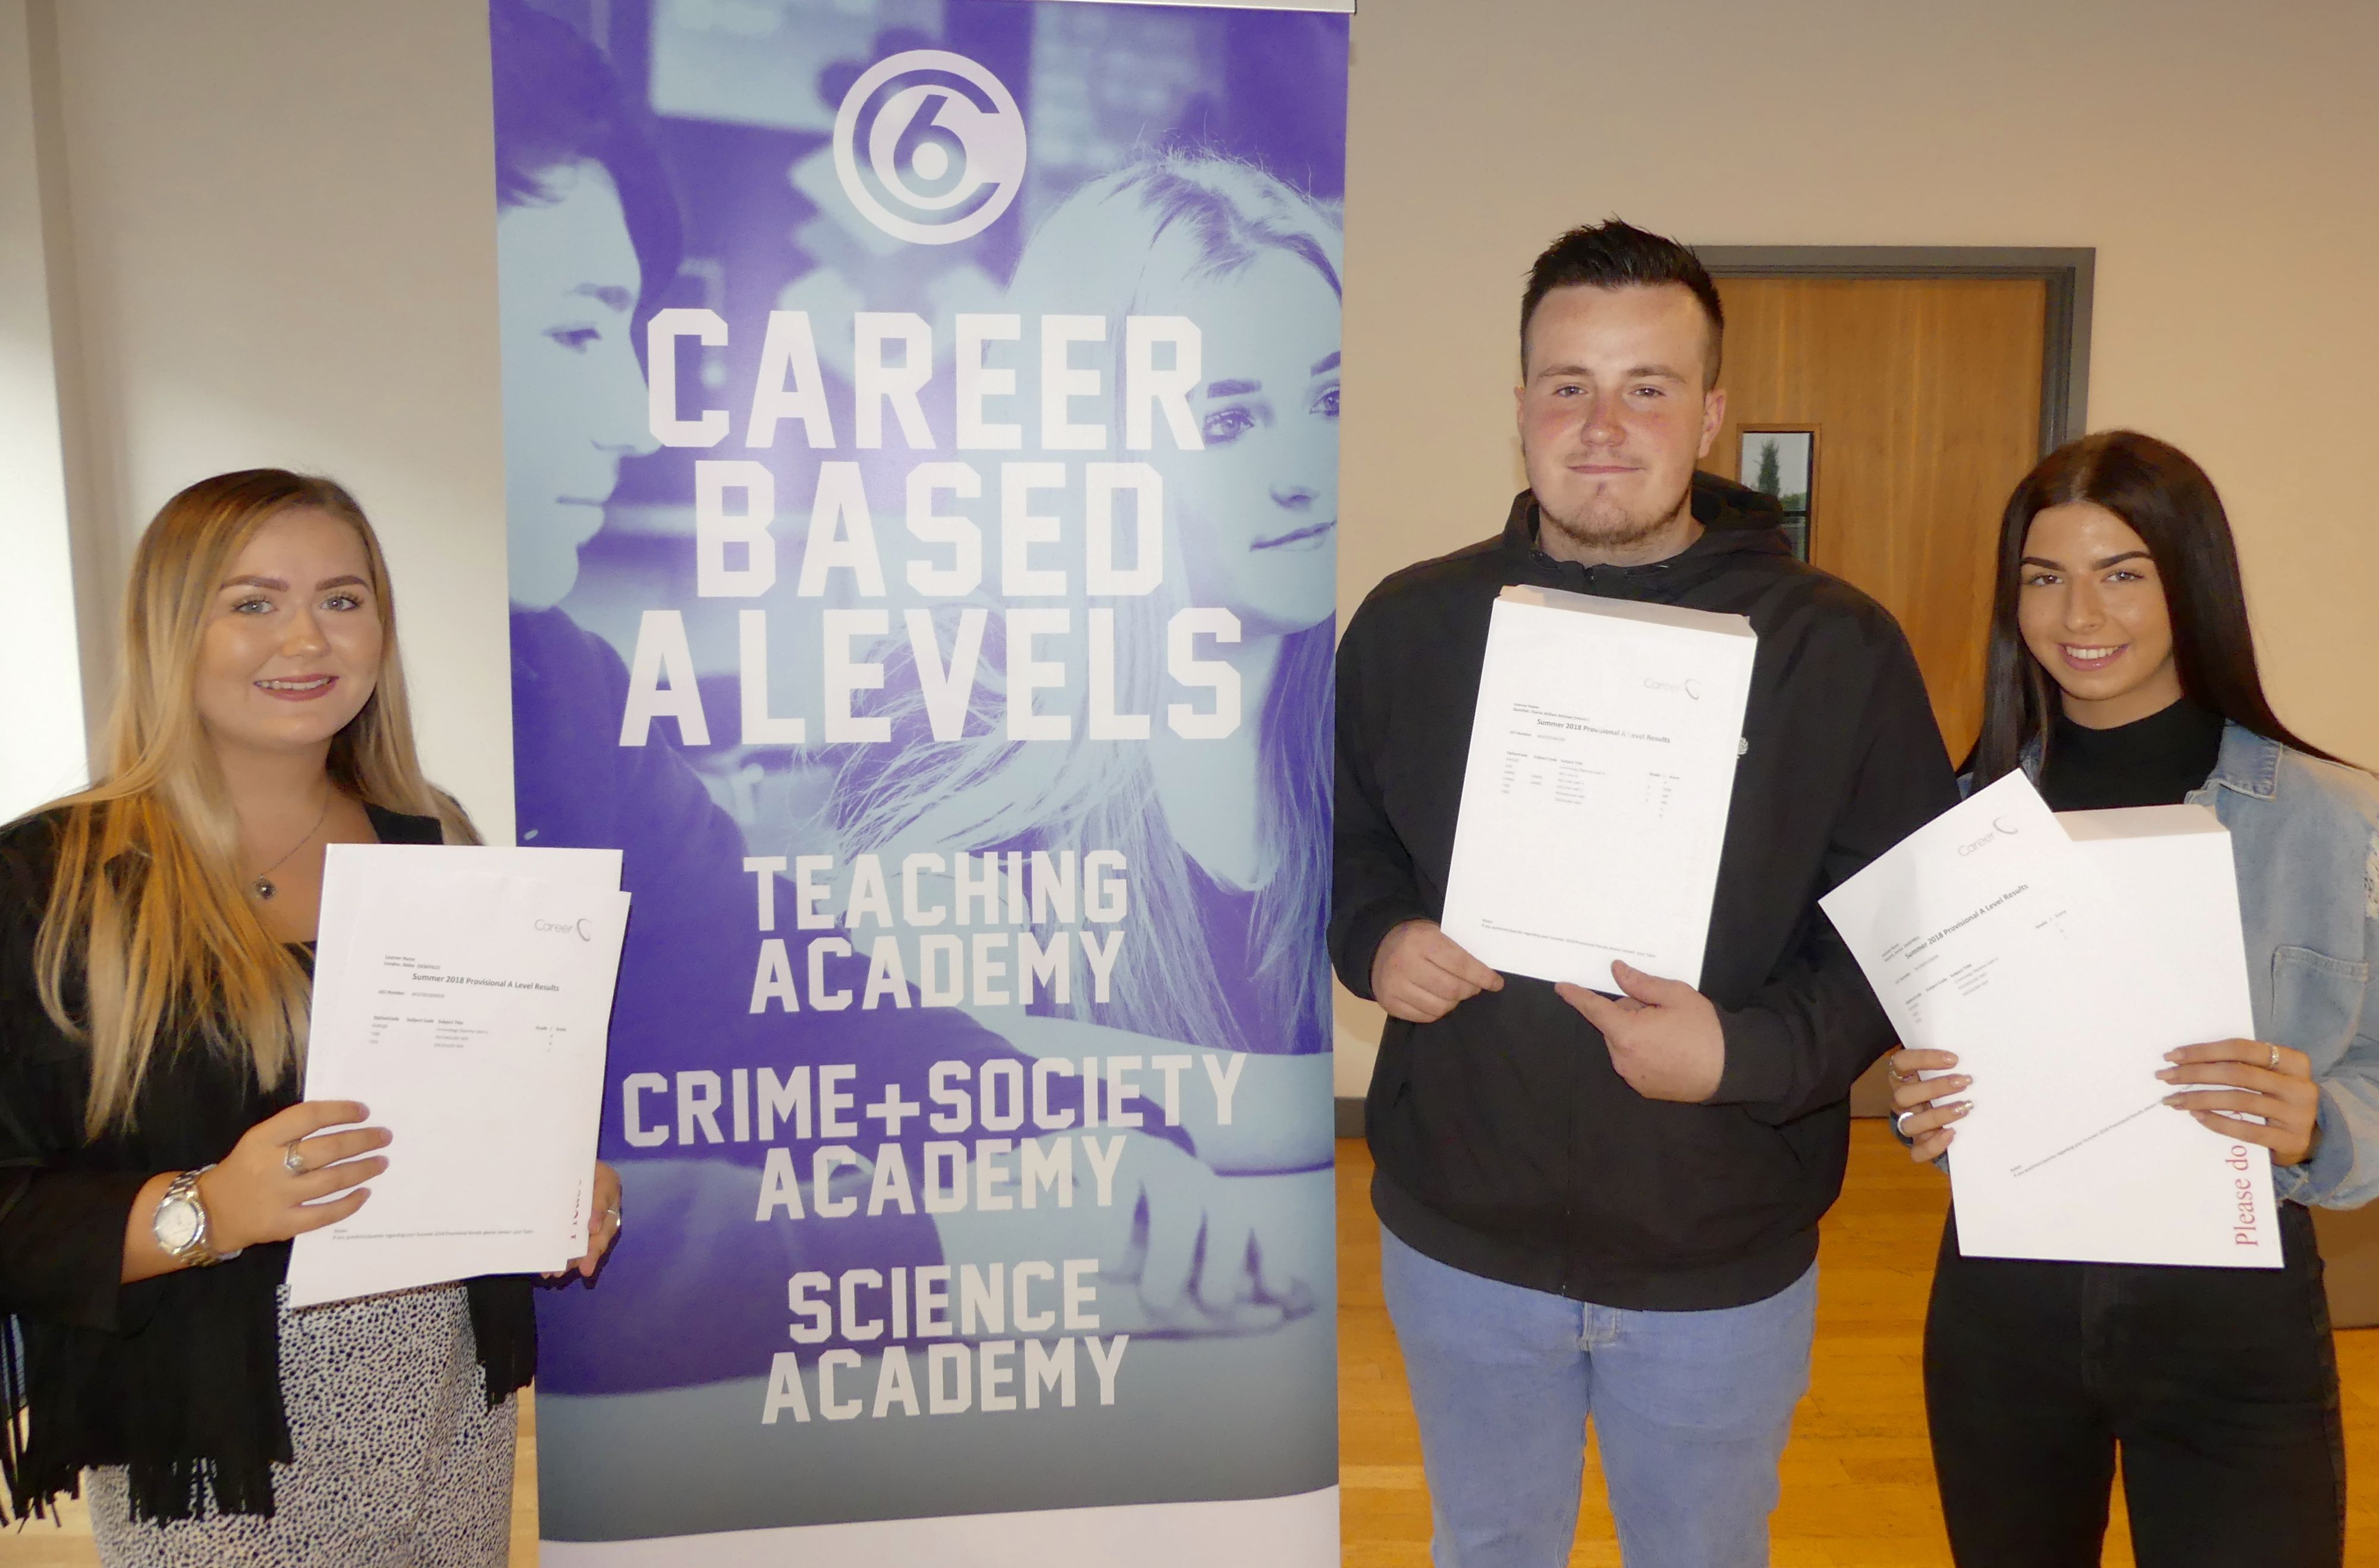 Majority of Career 6 courses achieve 100% A Level pass rate